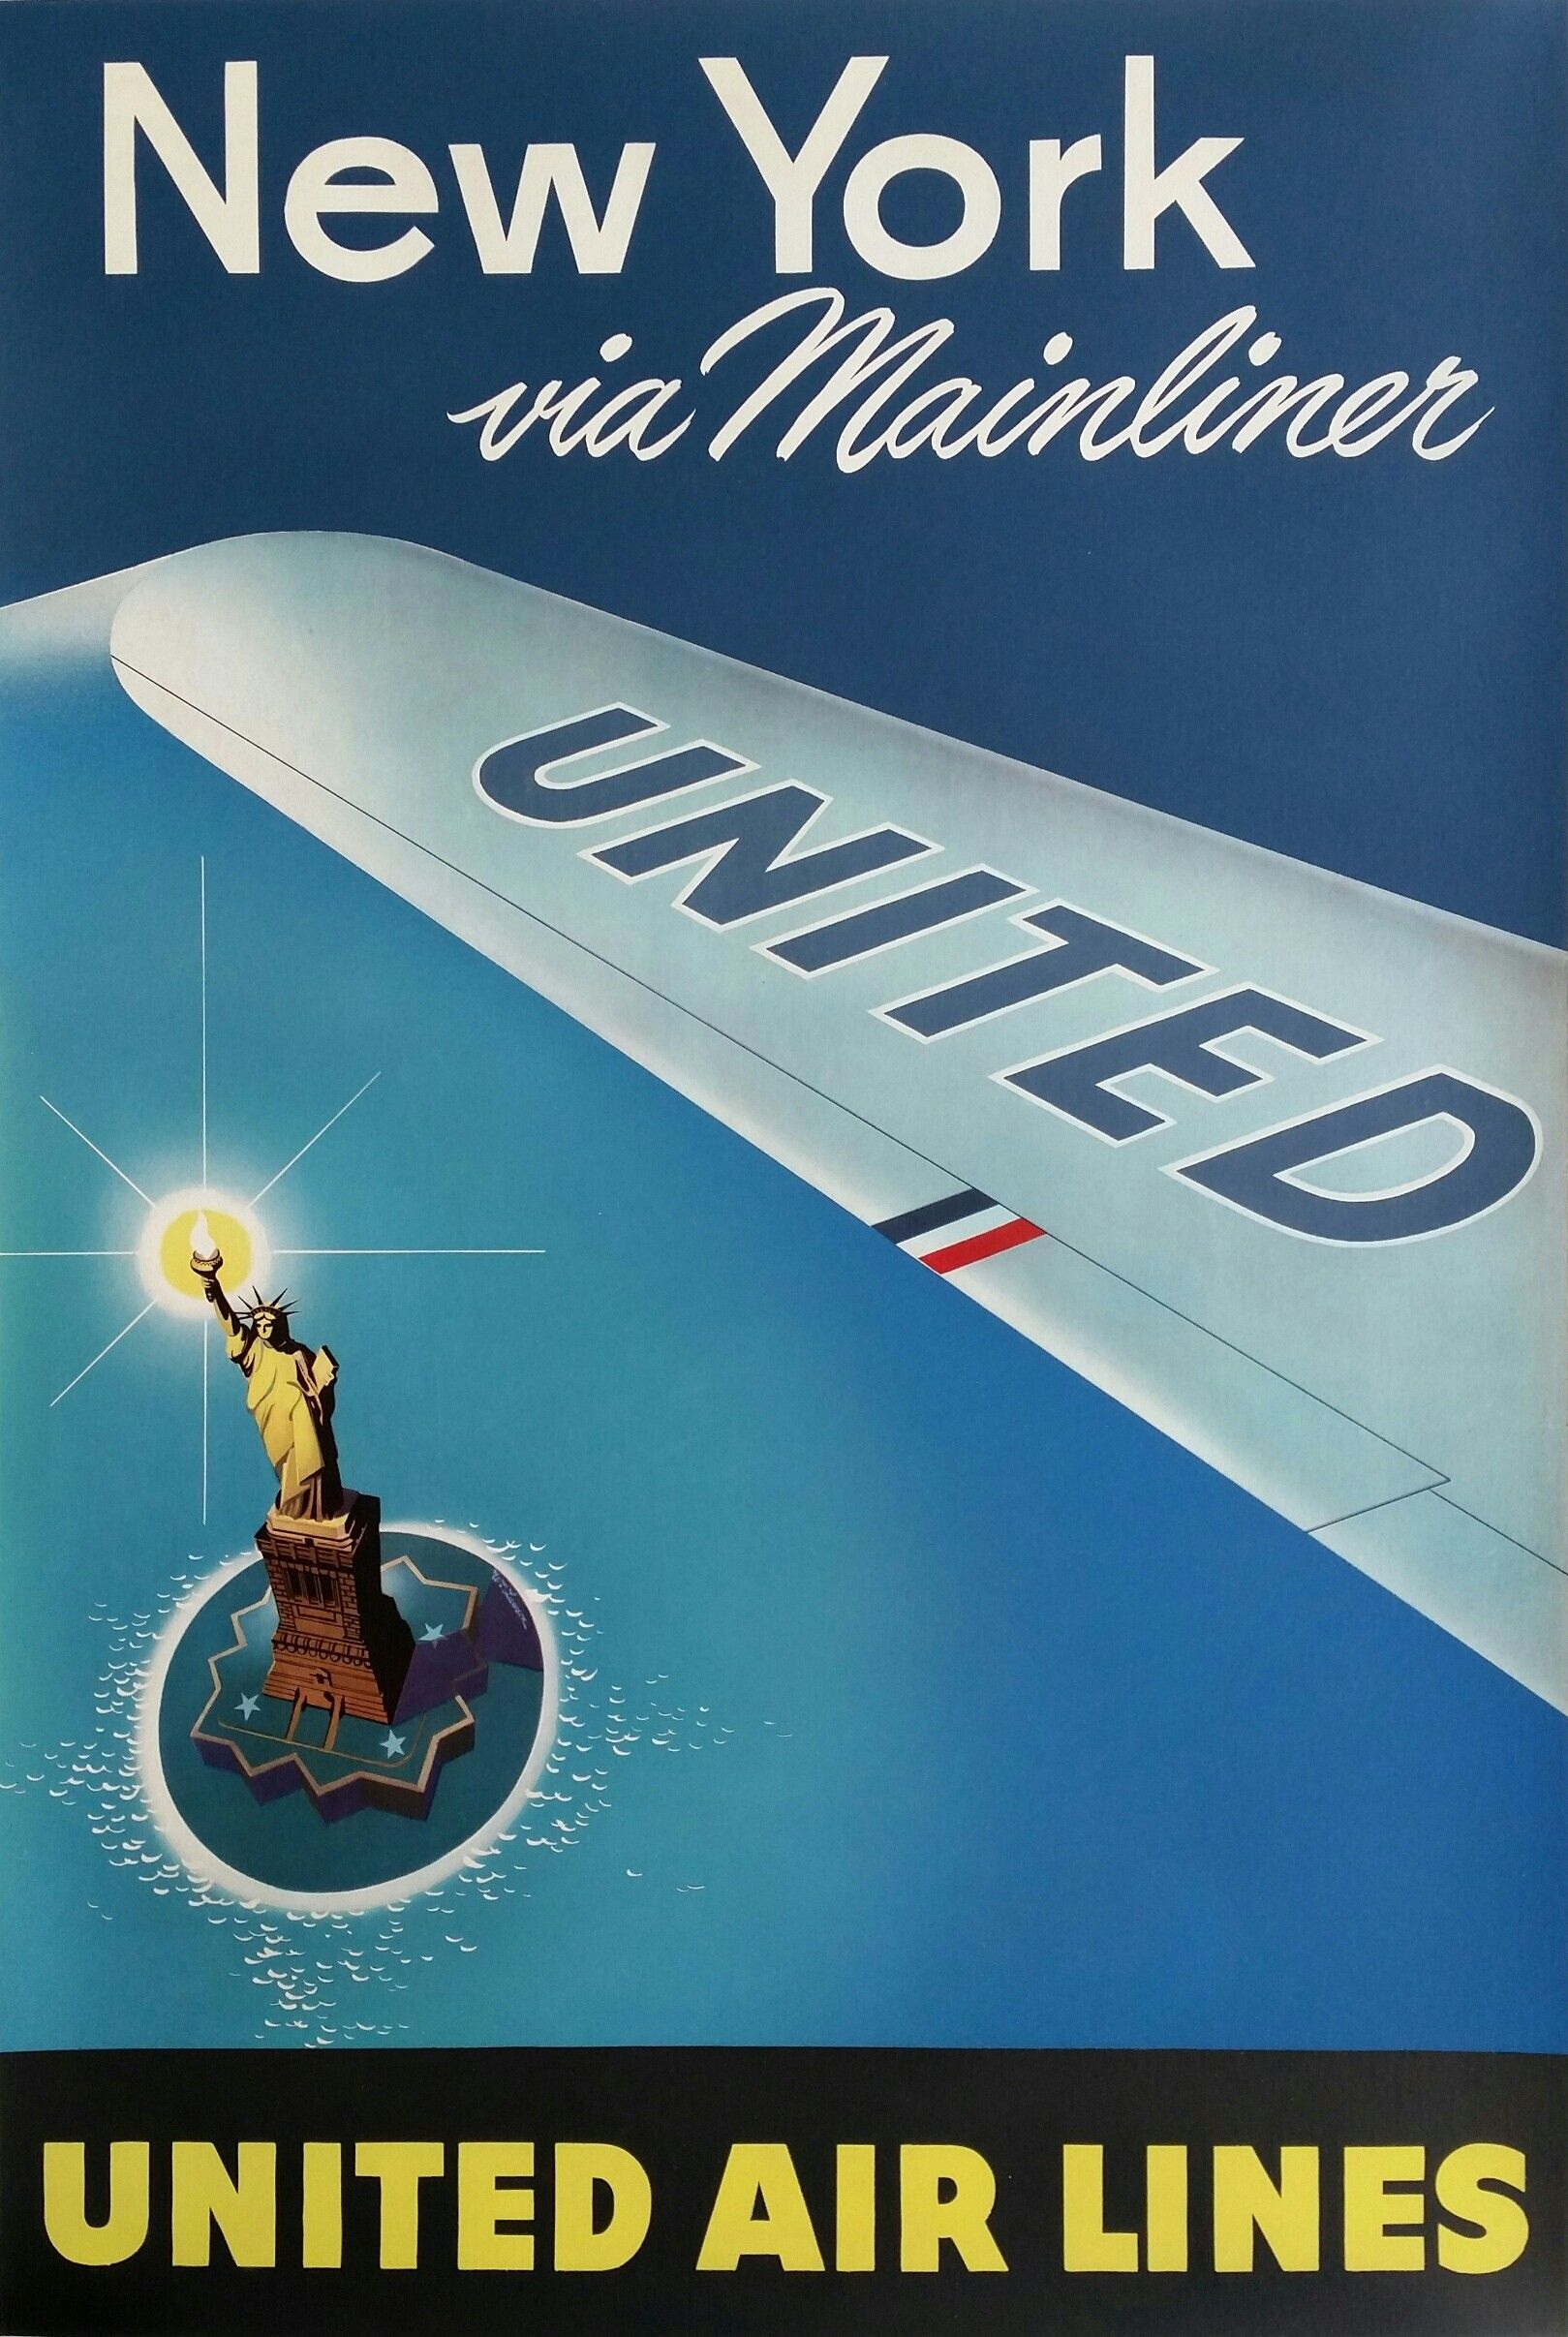 Affiche New York Original 43vintage 43poster 43united 43airlines 43new 43york 43via